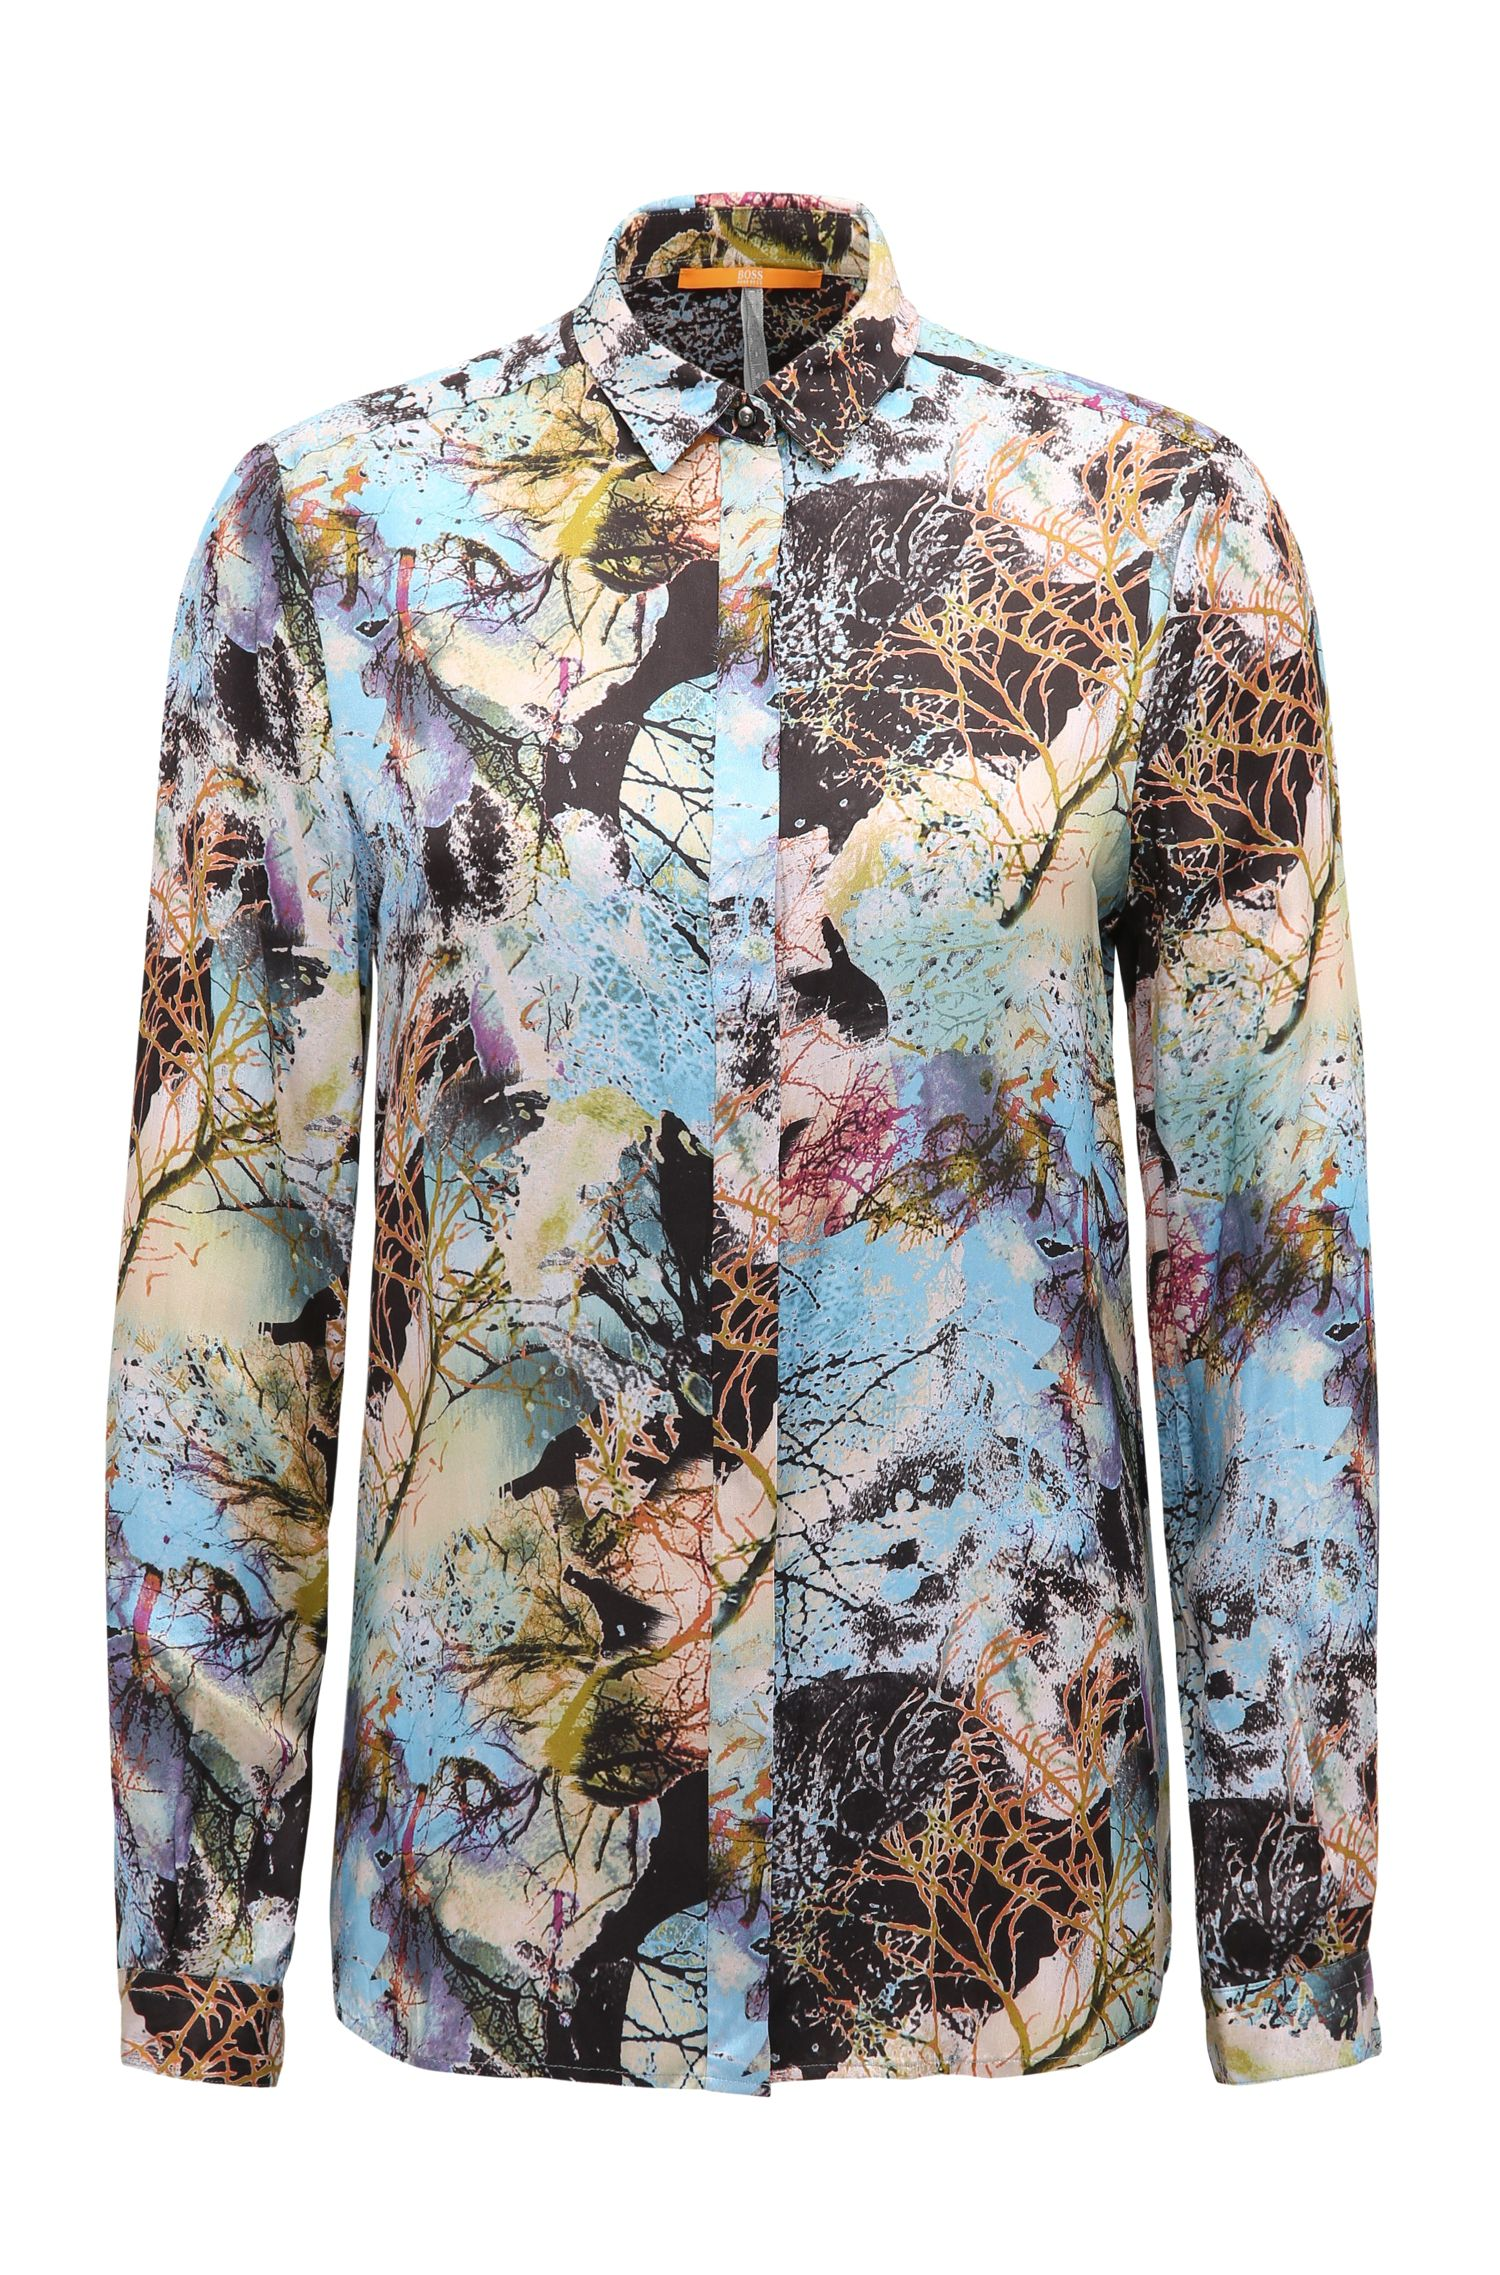 Regular-fit blouse in a nature-inspired print